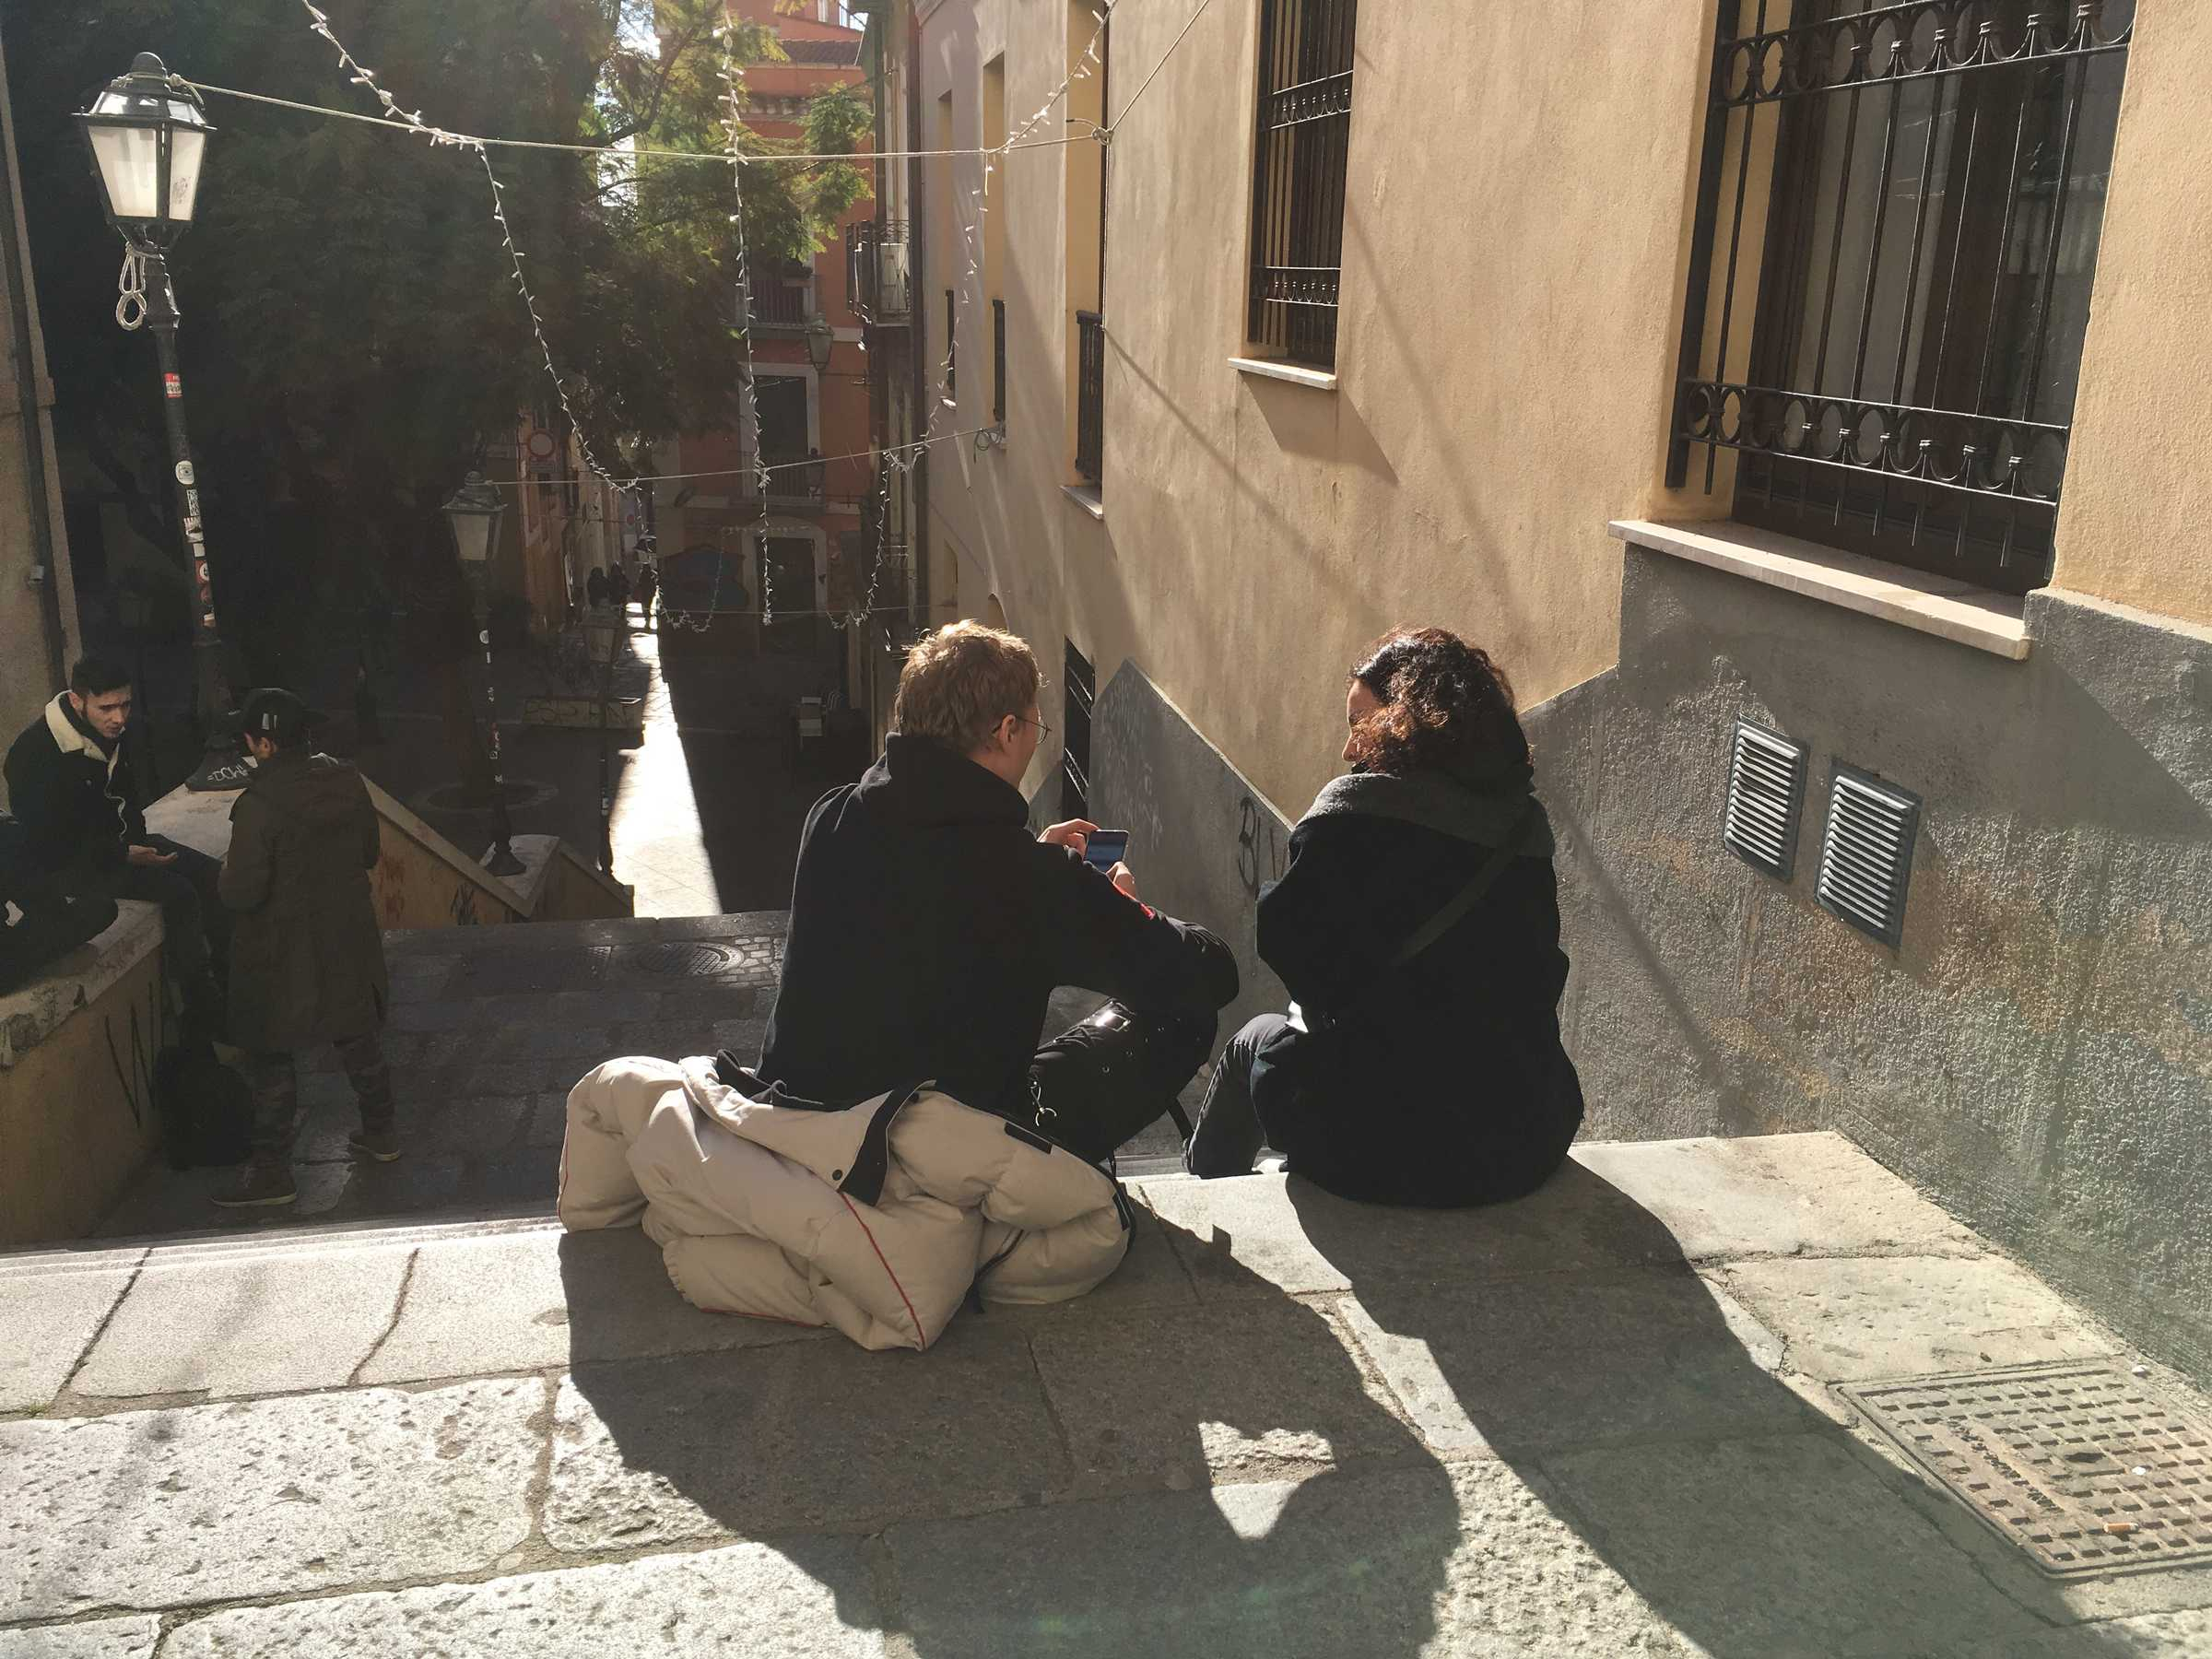 How To Do things With Theory ~ face to face meeting Ghalya Saadawi and Nilz Källgren, in the streets of Cagliari. DAI week 4, January 2019. Photo: Jacq van der Spek.